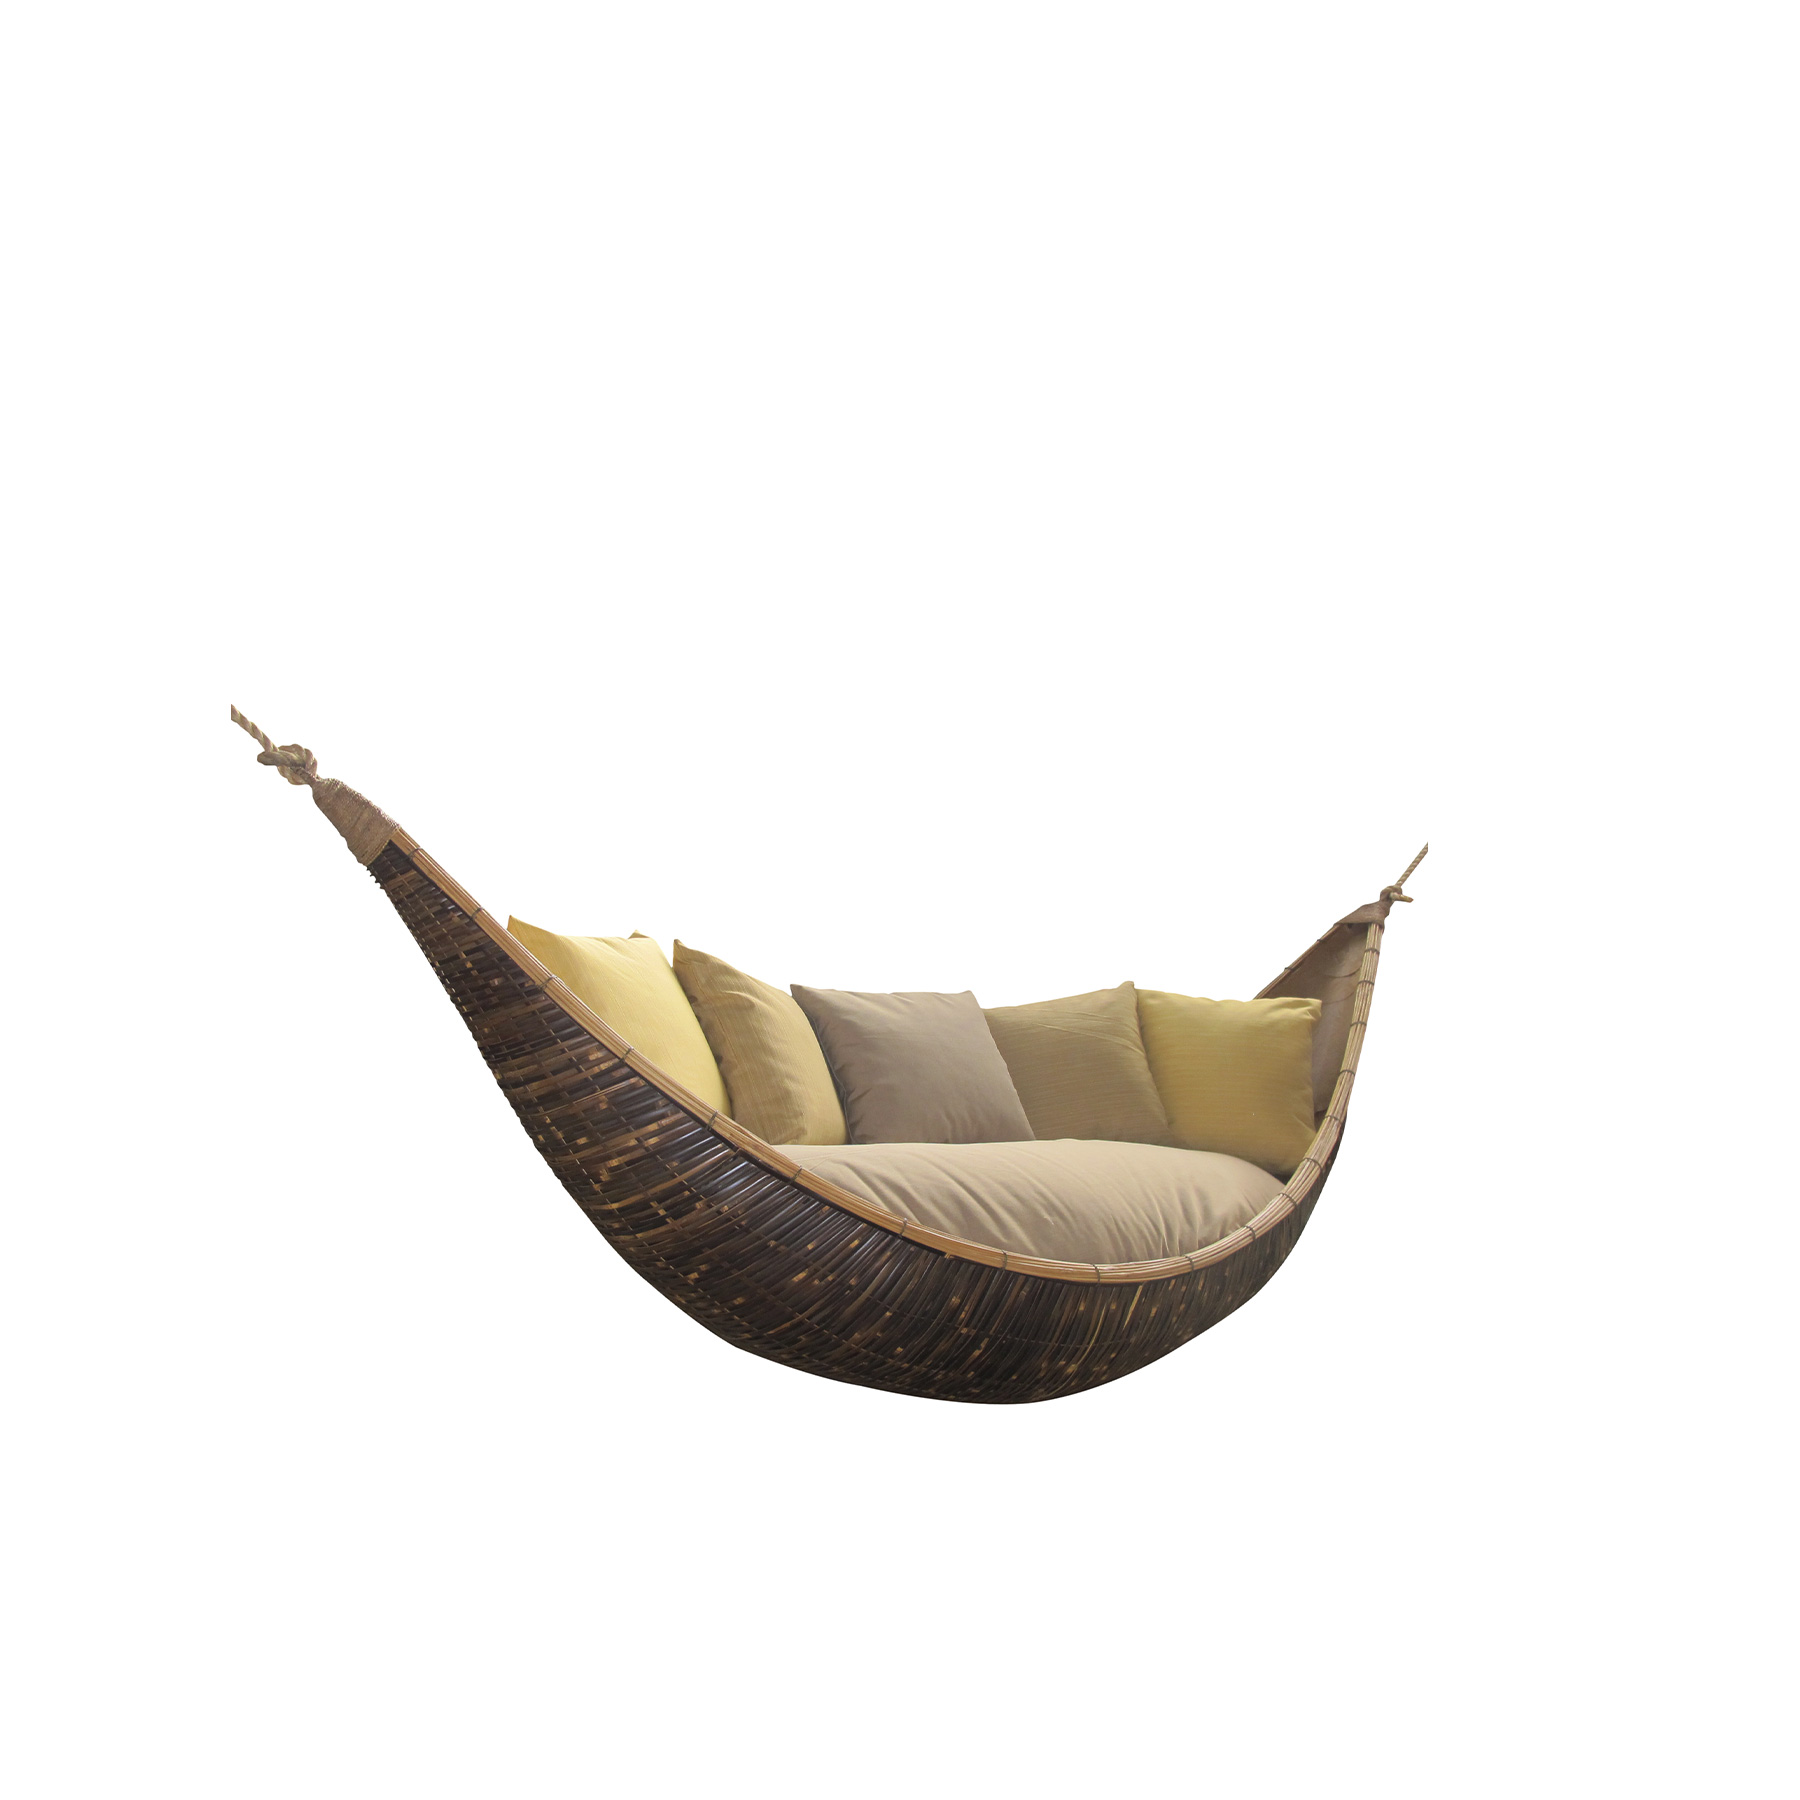 Swing Crescent - Our bamboo is carefully selected from the river valleys and mountains of the islands of Bali and Java in Indonesia. We harvest from clumps that, once established, grow a new generation of shoots each year. It takes just a few months for a new bamboo shoot to reach its full height, and in three years it becomes timber ready for harvest. Our craftsmen combine their traditional skills with modern carpentry techniques to produce our all-bamboo furniture. They transform poles of bamboo into floors, walls, baskets, railings, beds, chairs, kitchens, ceilings, stairs, and tables. From customised pieces to interior designs, our furniture brings bamboo's unique warmth into any space, across the world. IBUKU's team of designers create innovative, hand-made masterpieces including stools, chairs, tables, lounges and beds. Our bespoke interior basket structures, screen panels and sculptures bring a sense of wonder into the everyday. IBUKU takes great care to ensure that only the mature poles are harvested, creating an incentive for the bamboo farmers to allow the younger shoots to grow to maturity for subsequent years' harvests.    Matter of Stuff